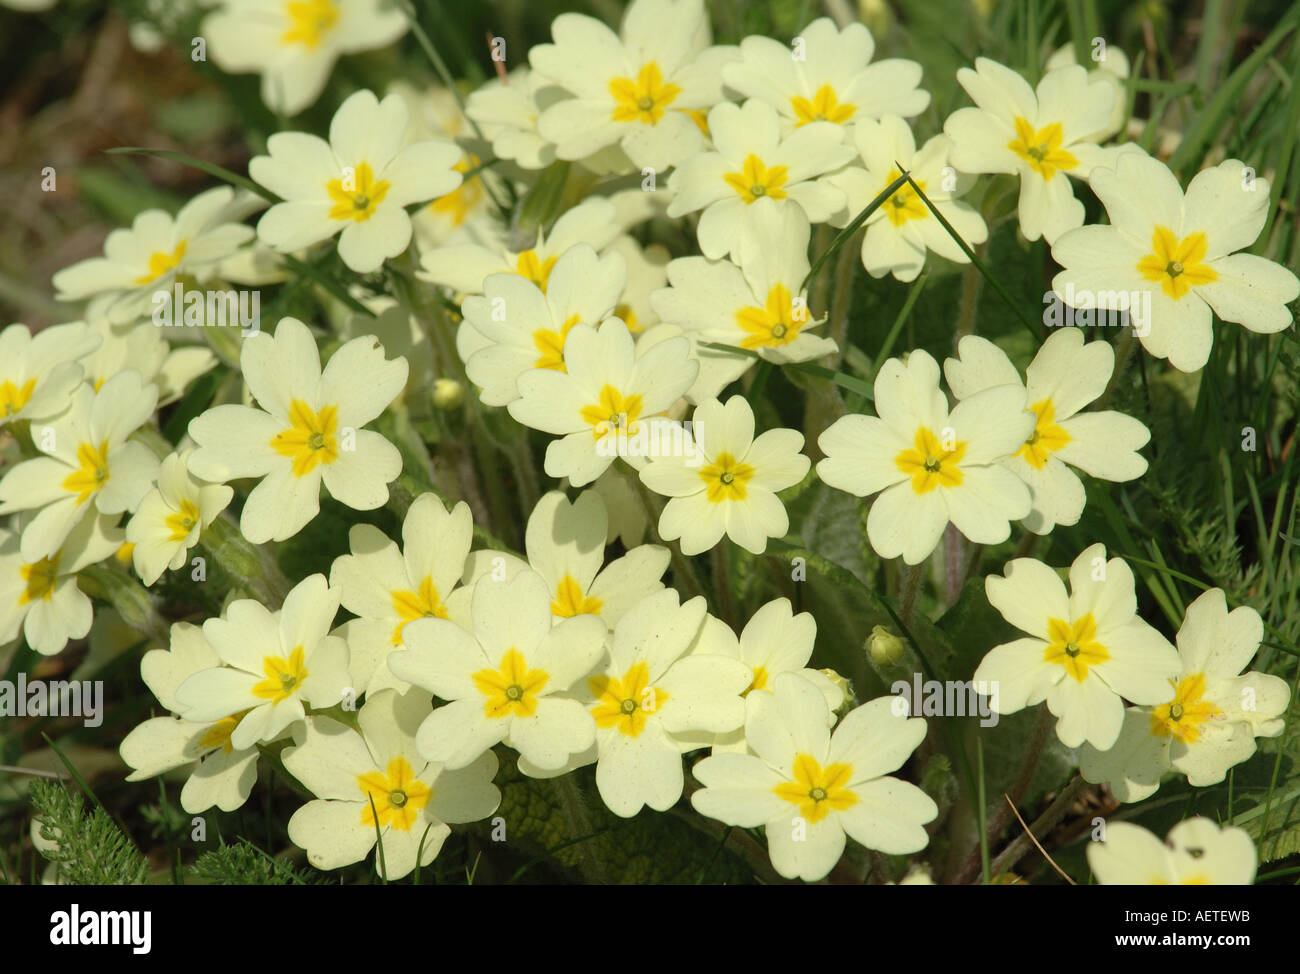 Pale yellow flowers of the primrose stock photo 7858970 alamy pale yellow flowers of the primrose mightylinksfo Choice Image